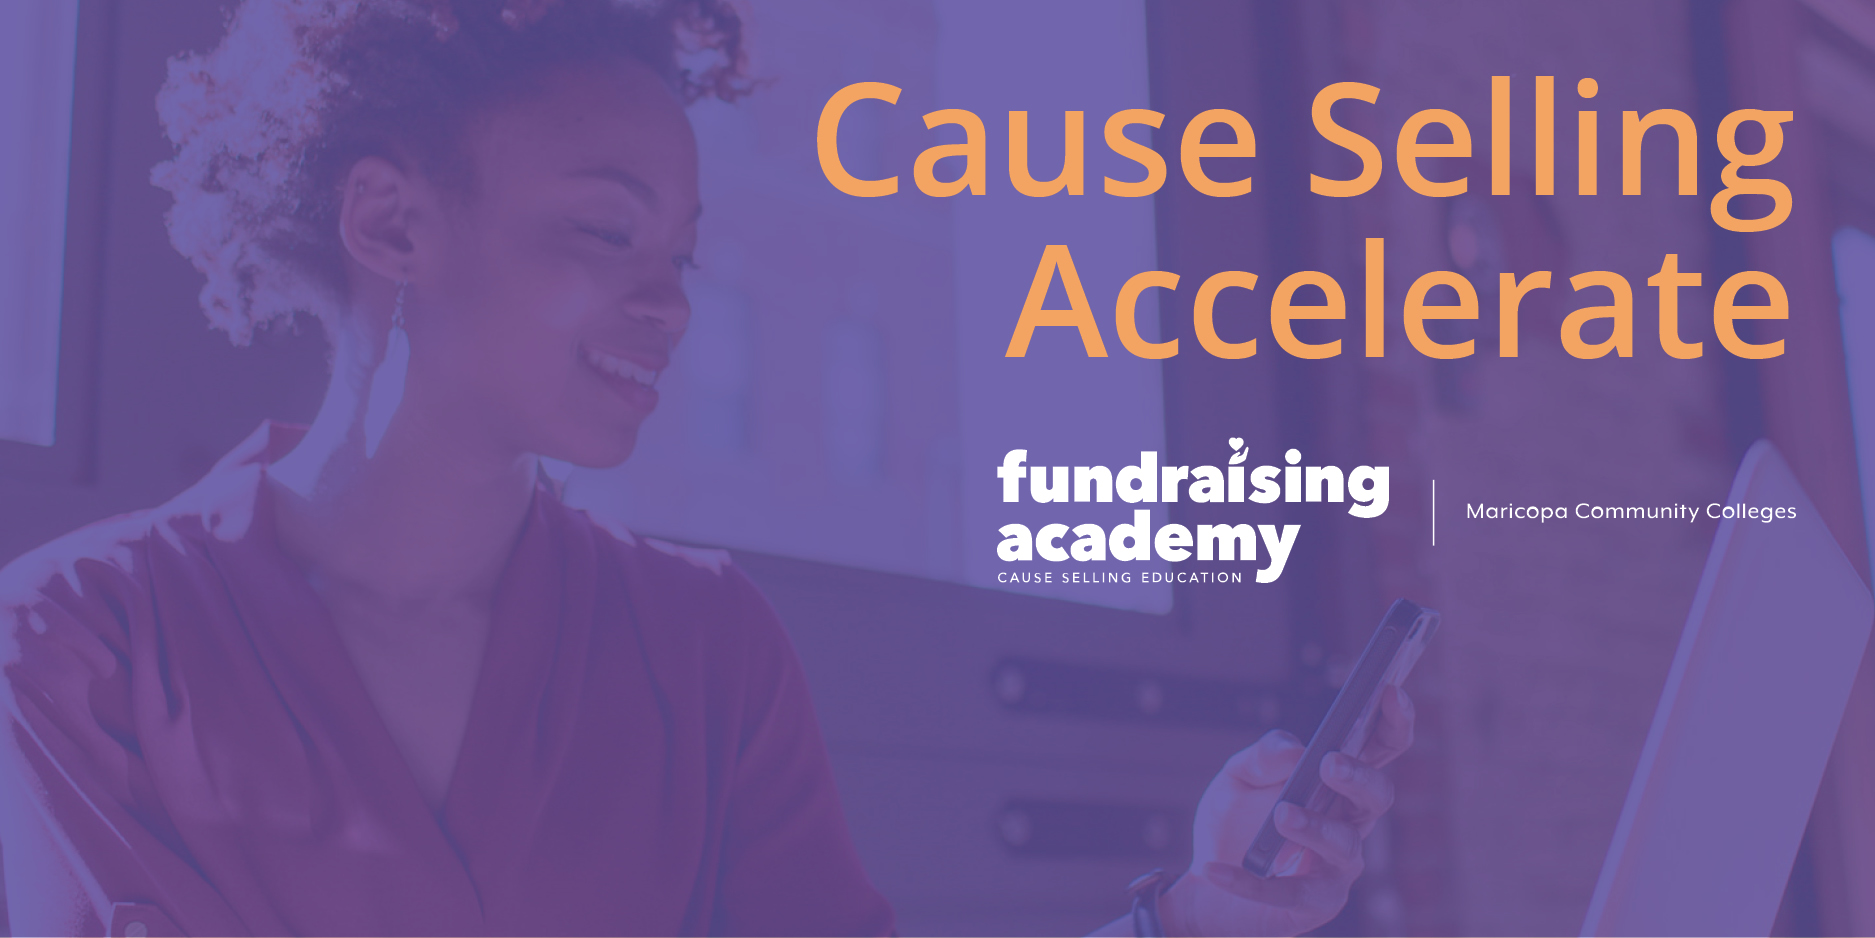 fundraising Academy - Cause Selling Accelerate